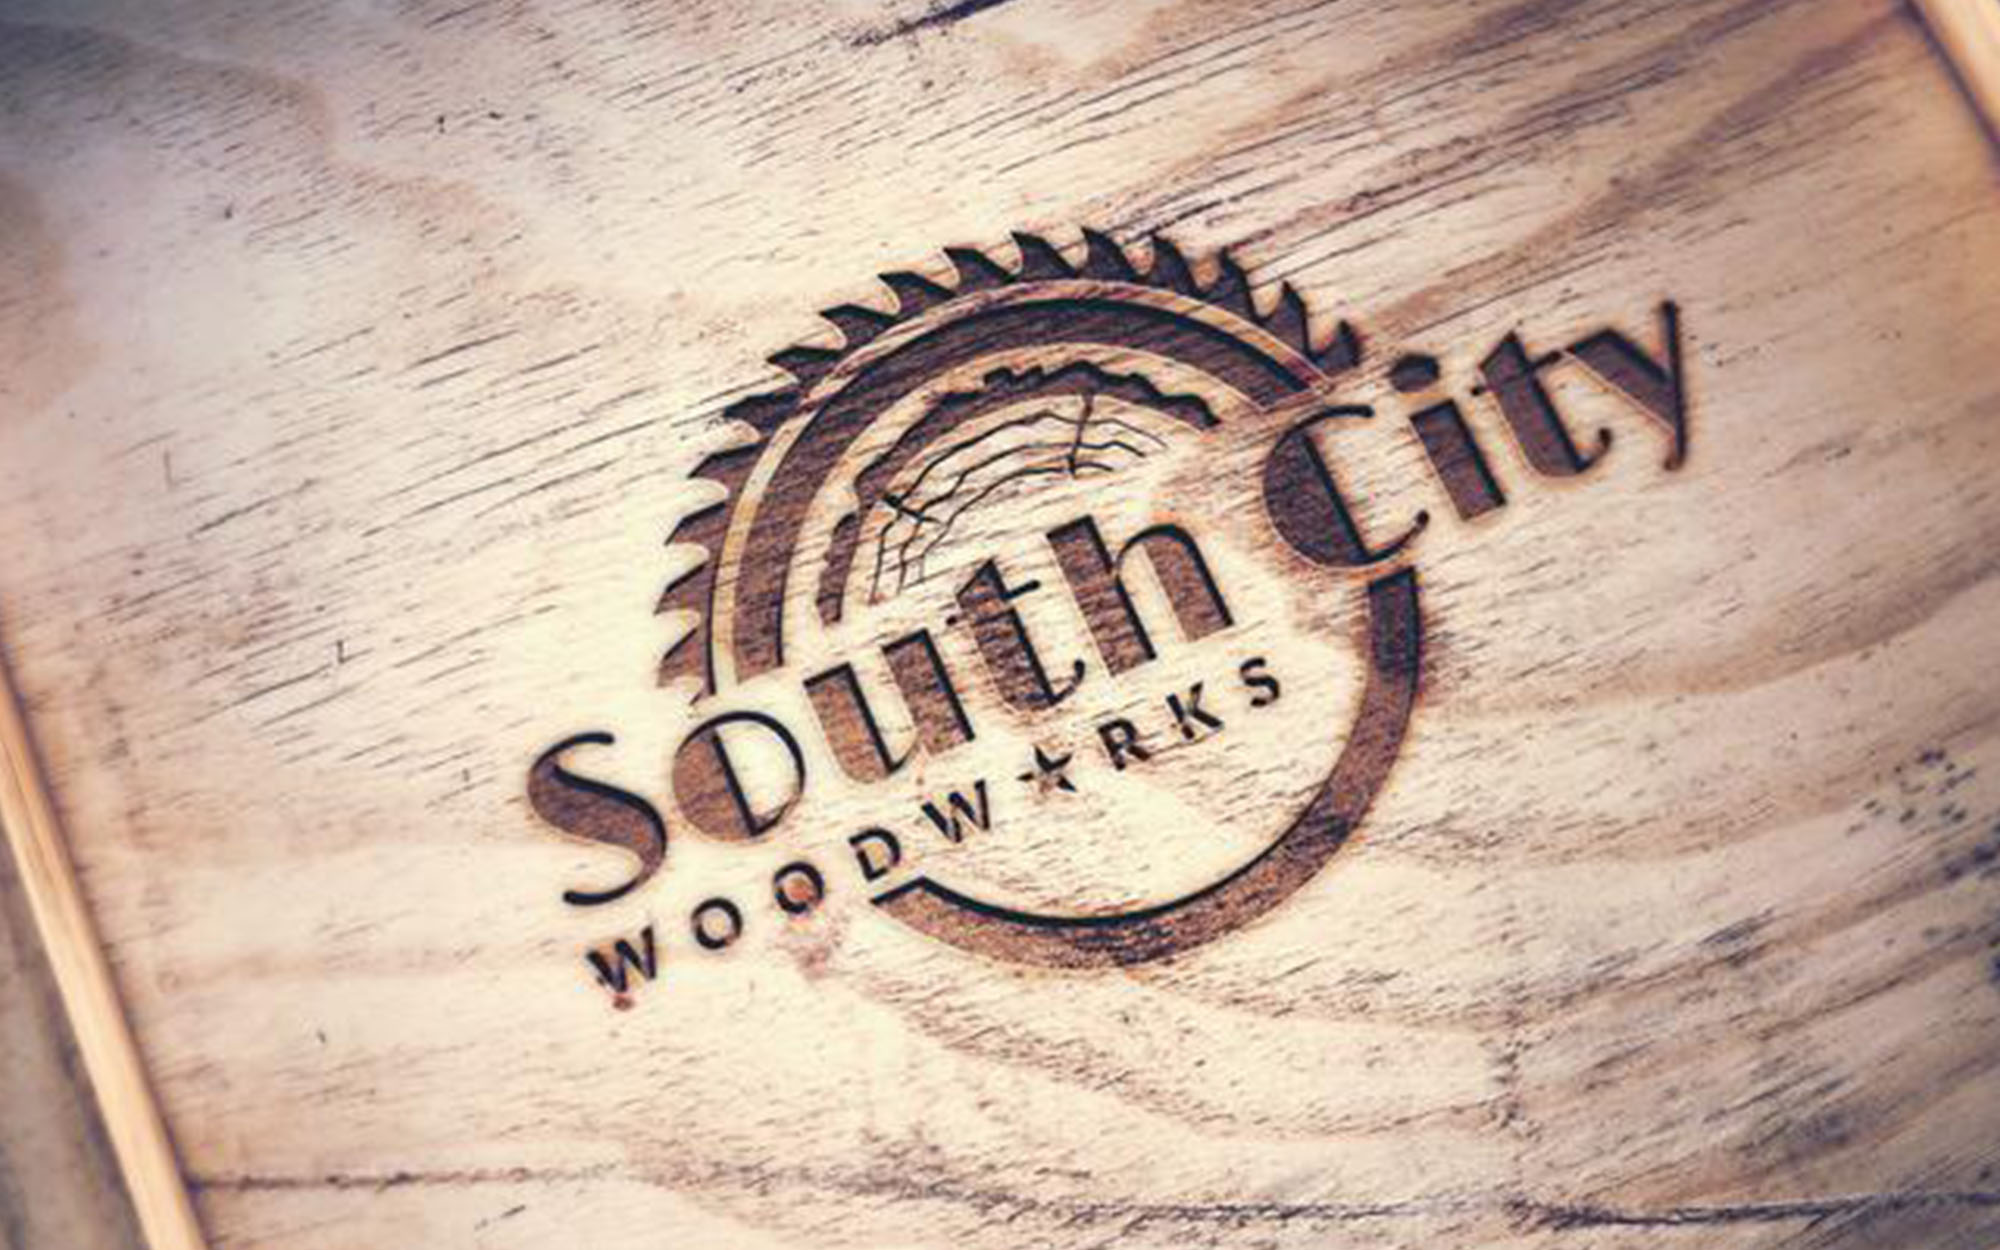 south city woodworks